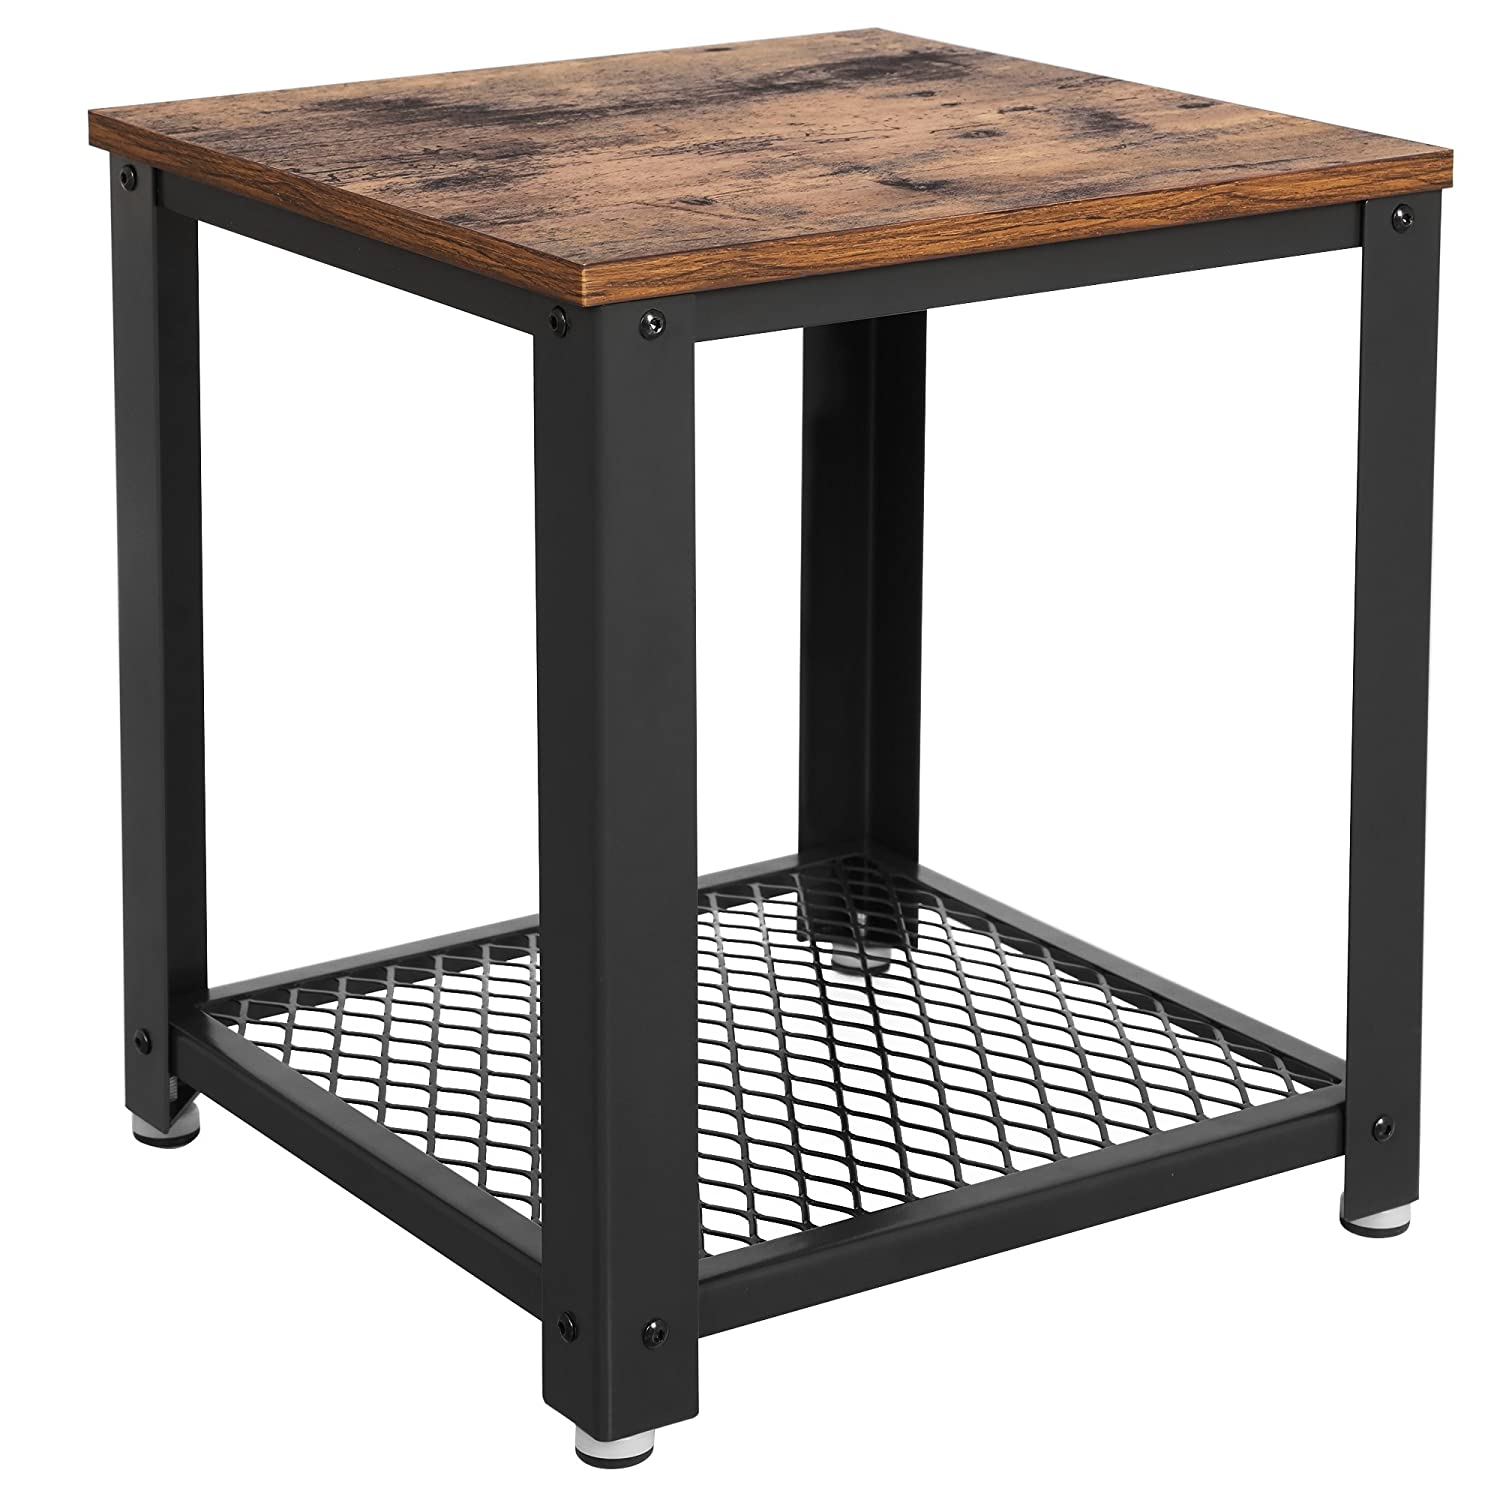 Amazon com vasagle industrial end 2 tier side table with storage shelf sturdy and easy assembly wood look accent furniture with metal frame ulet41x